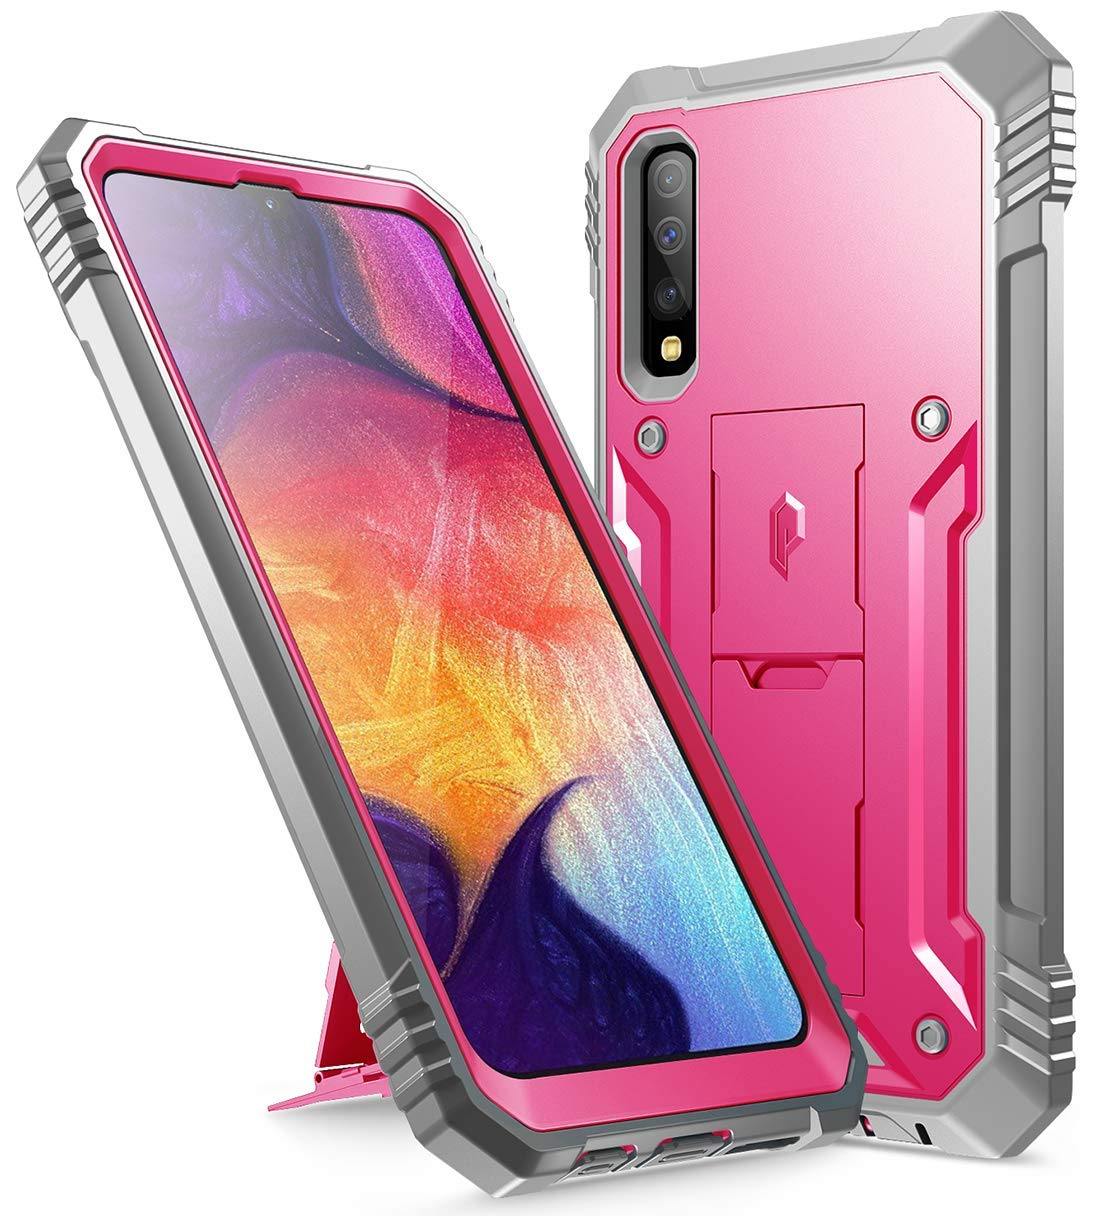 Poetic Galaxy A50 Rugged Case with Kickstand, Full-Body Dual-Layer Shockproof Protective Cover, Built-in-Screen Protector, Revolution Series, Defender Case for Samsung Galaxy A50, Pink